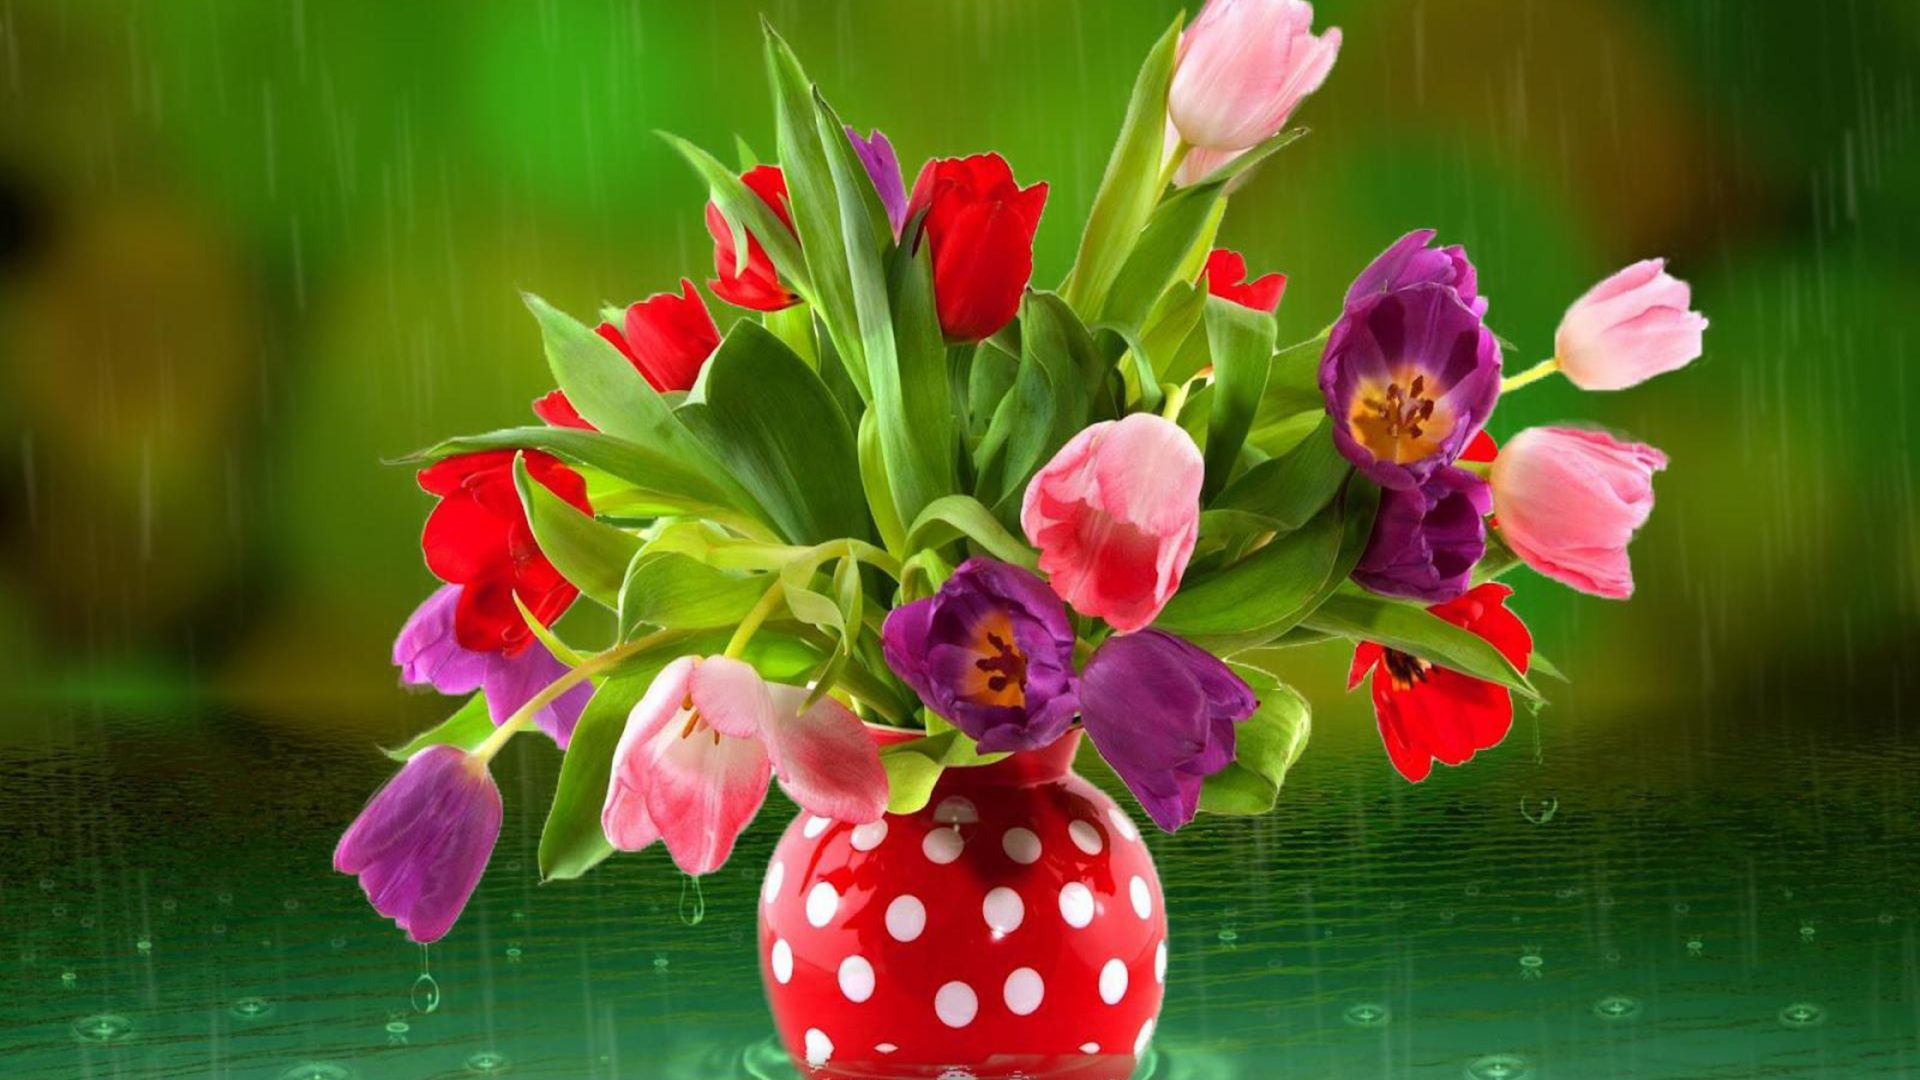 Beautiful Flower Vases Beautiful Flowers In Vase 1238 2560x1600 0234